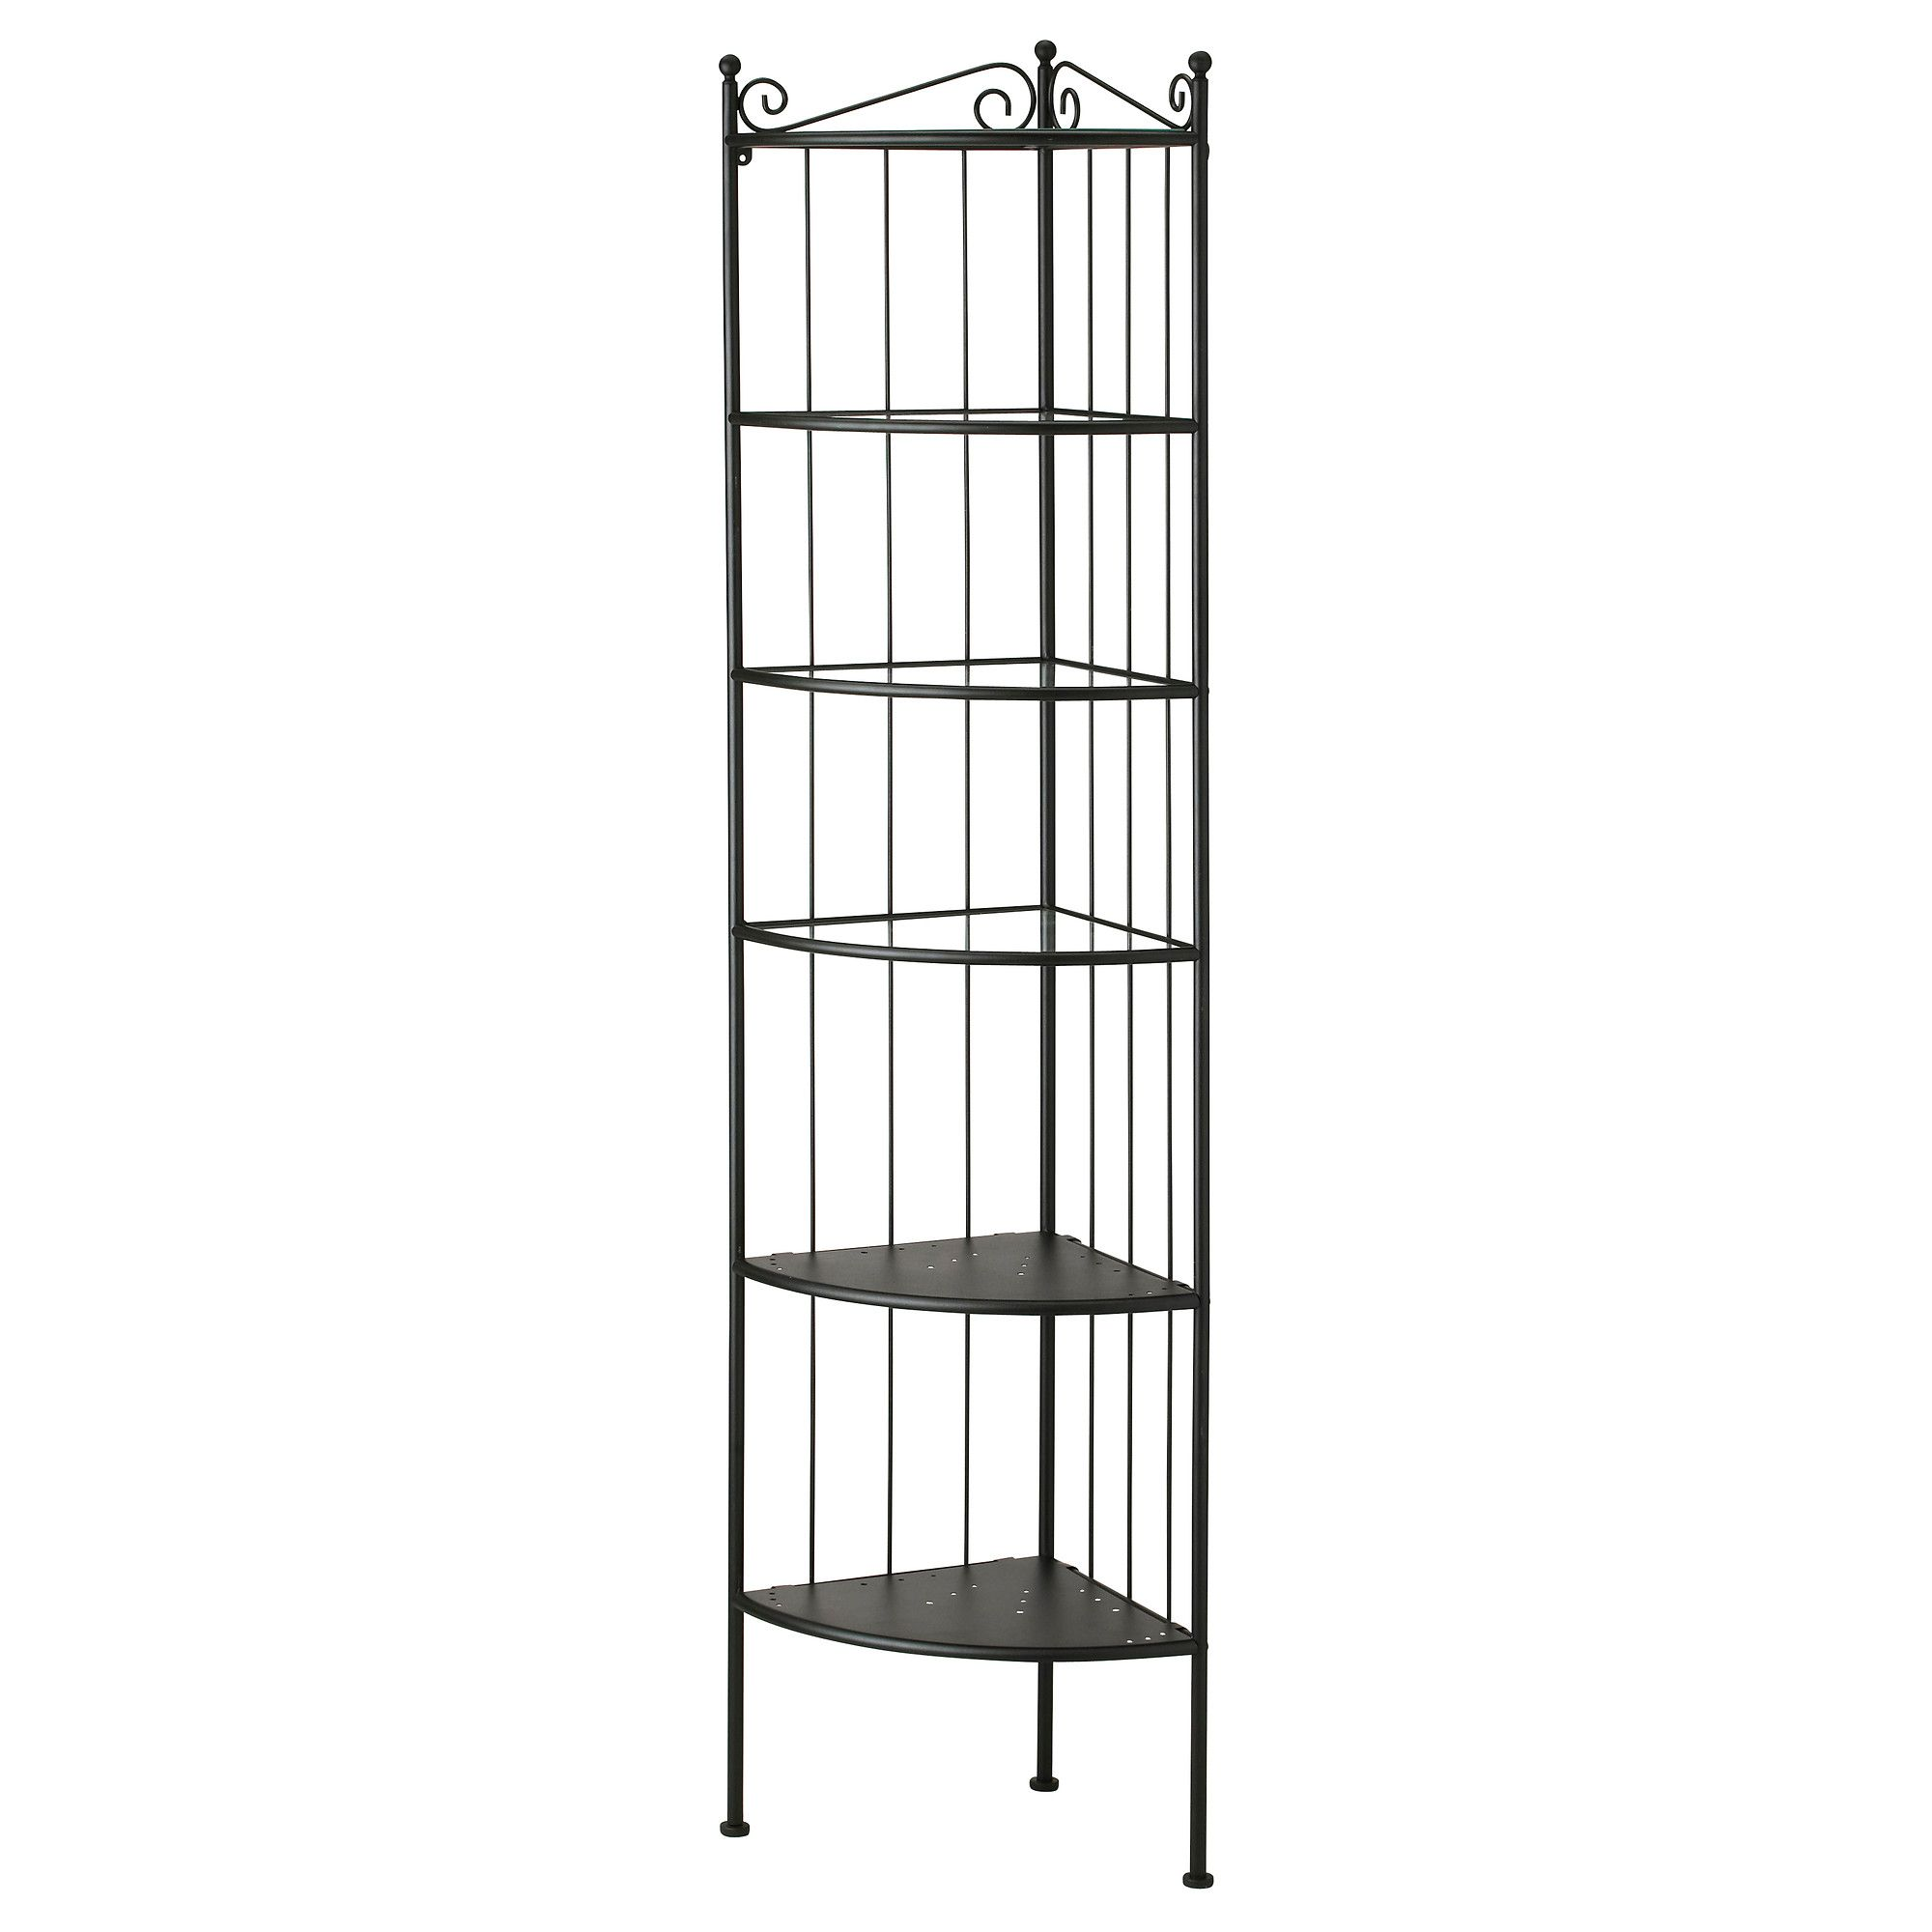 RÖNNSKÄR Corner shelf unit, black | Corner shelf, Corner and Shelves